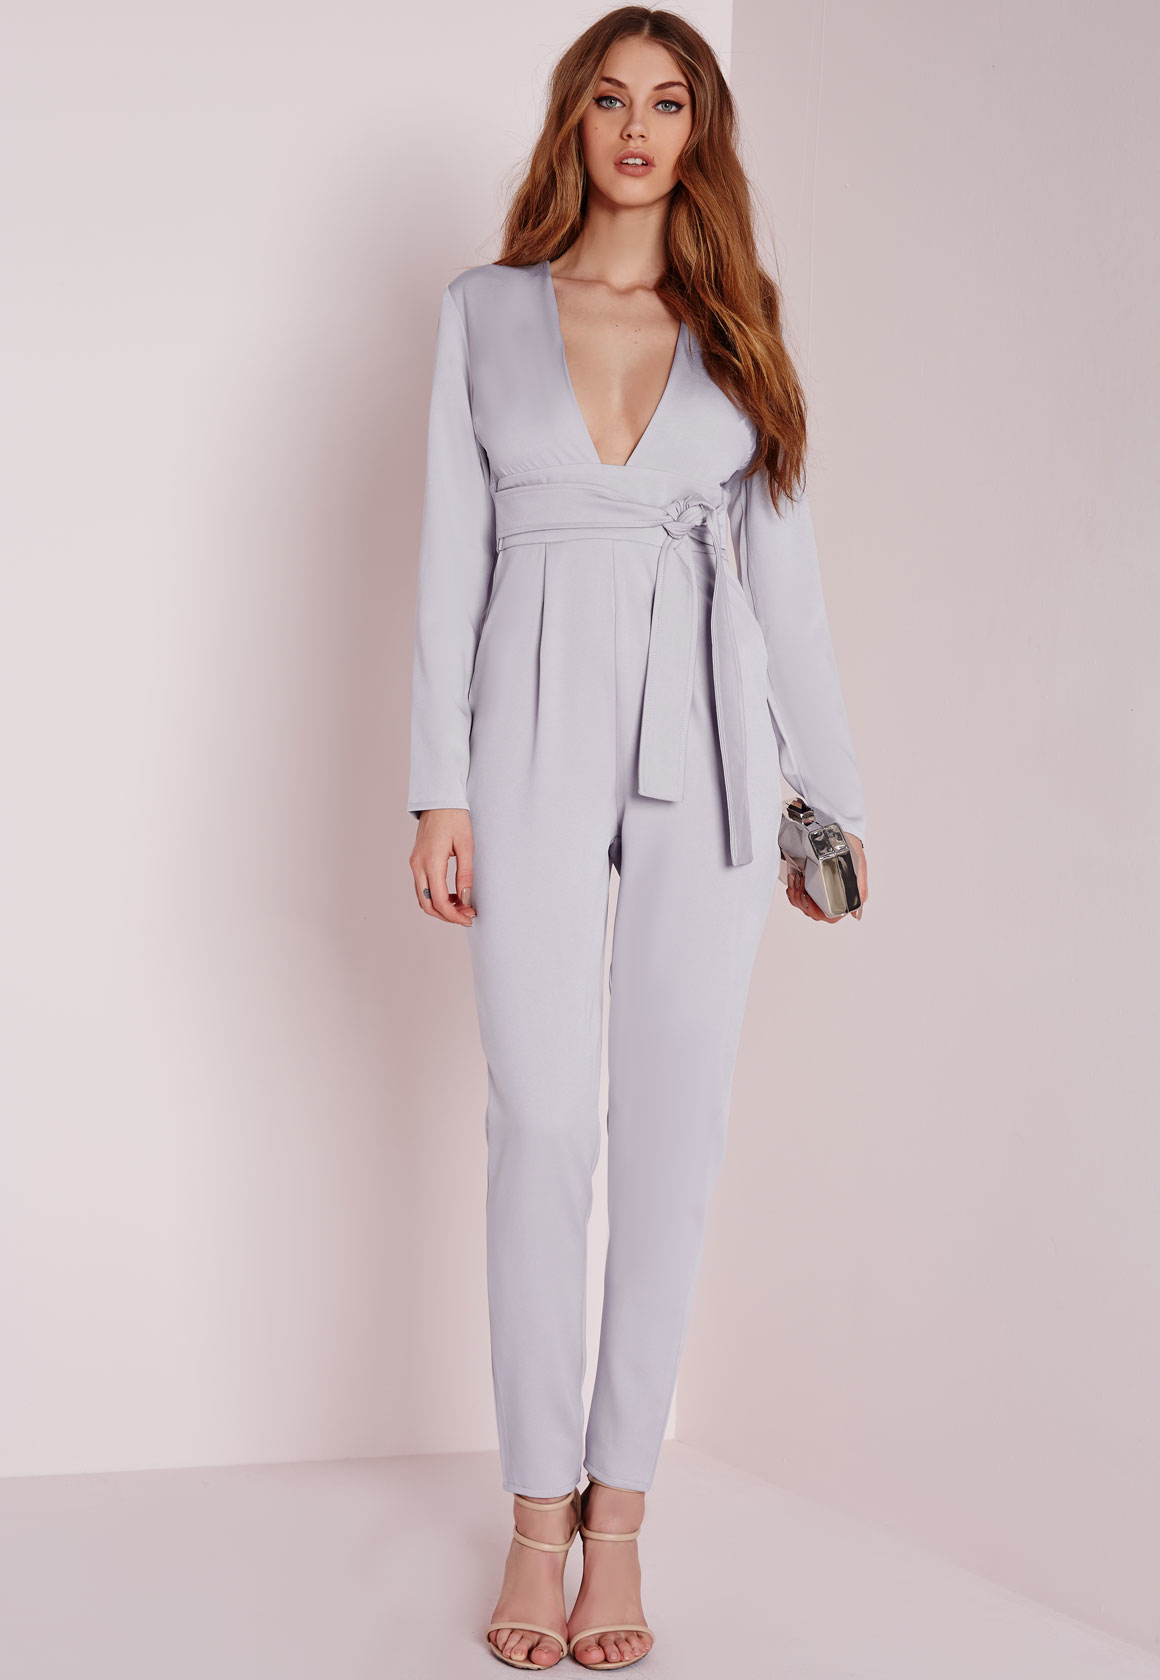 Nothing is more flattering than long sleeves, and this collection showcases a killer collection of chic long sleeve jumpsuits. Keep it classic with a tailored piece, feel the force of florals in an all over floral beauty or keep it minimal with a sexy wrap jumpsuit all finished with long sleeves.